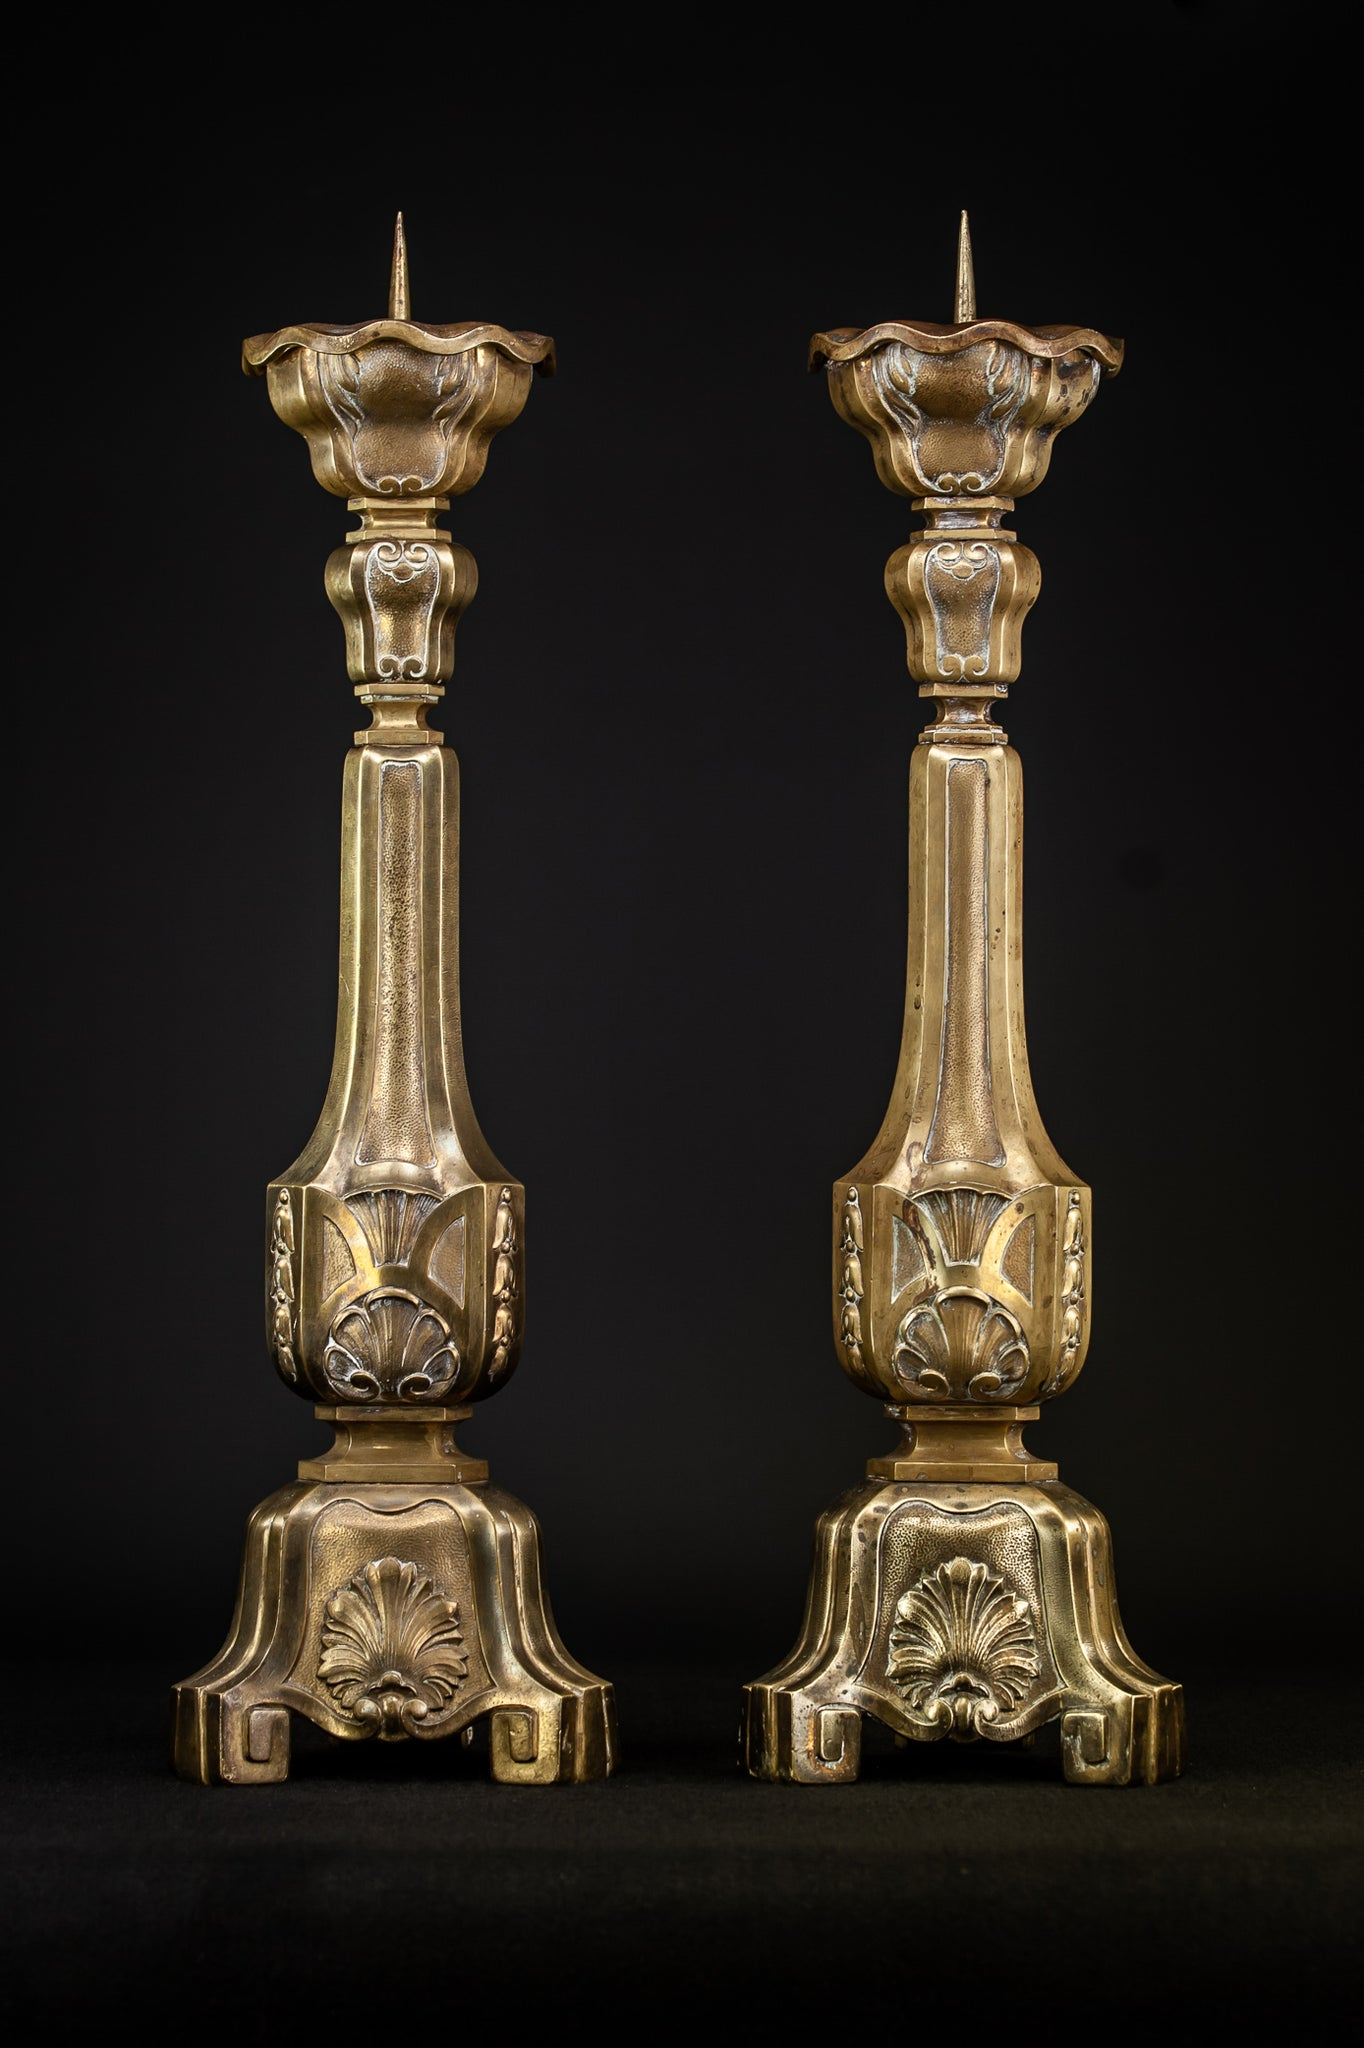 Pair of Art Deco Pricket Candlestick | 24.8""